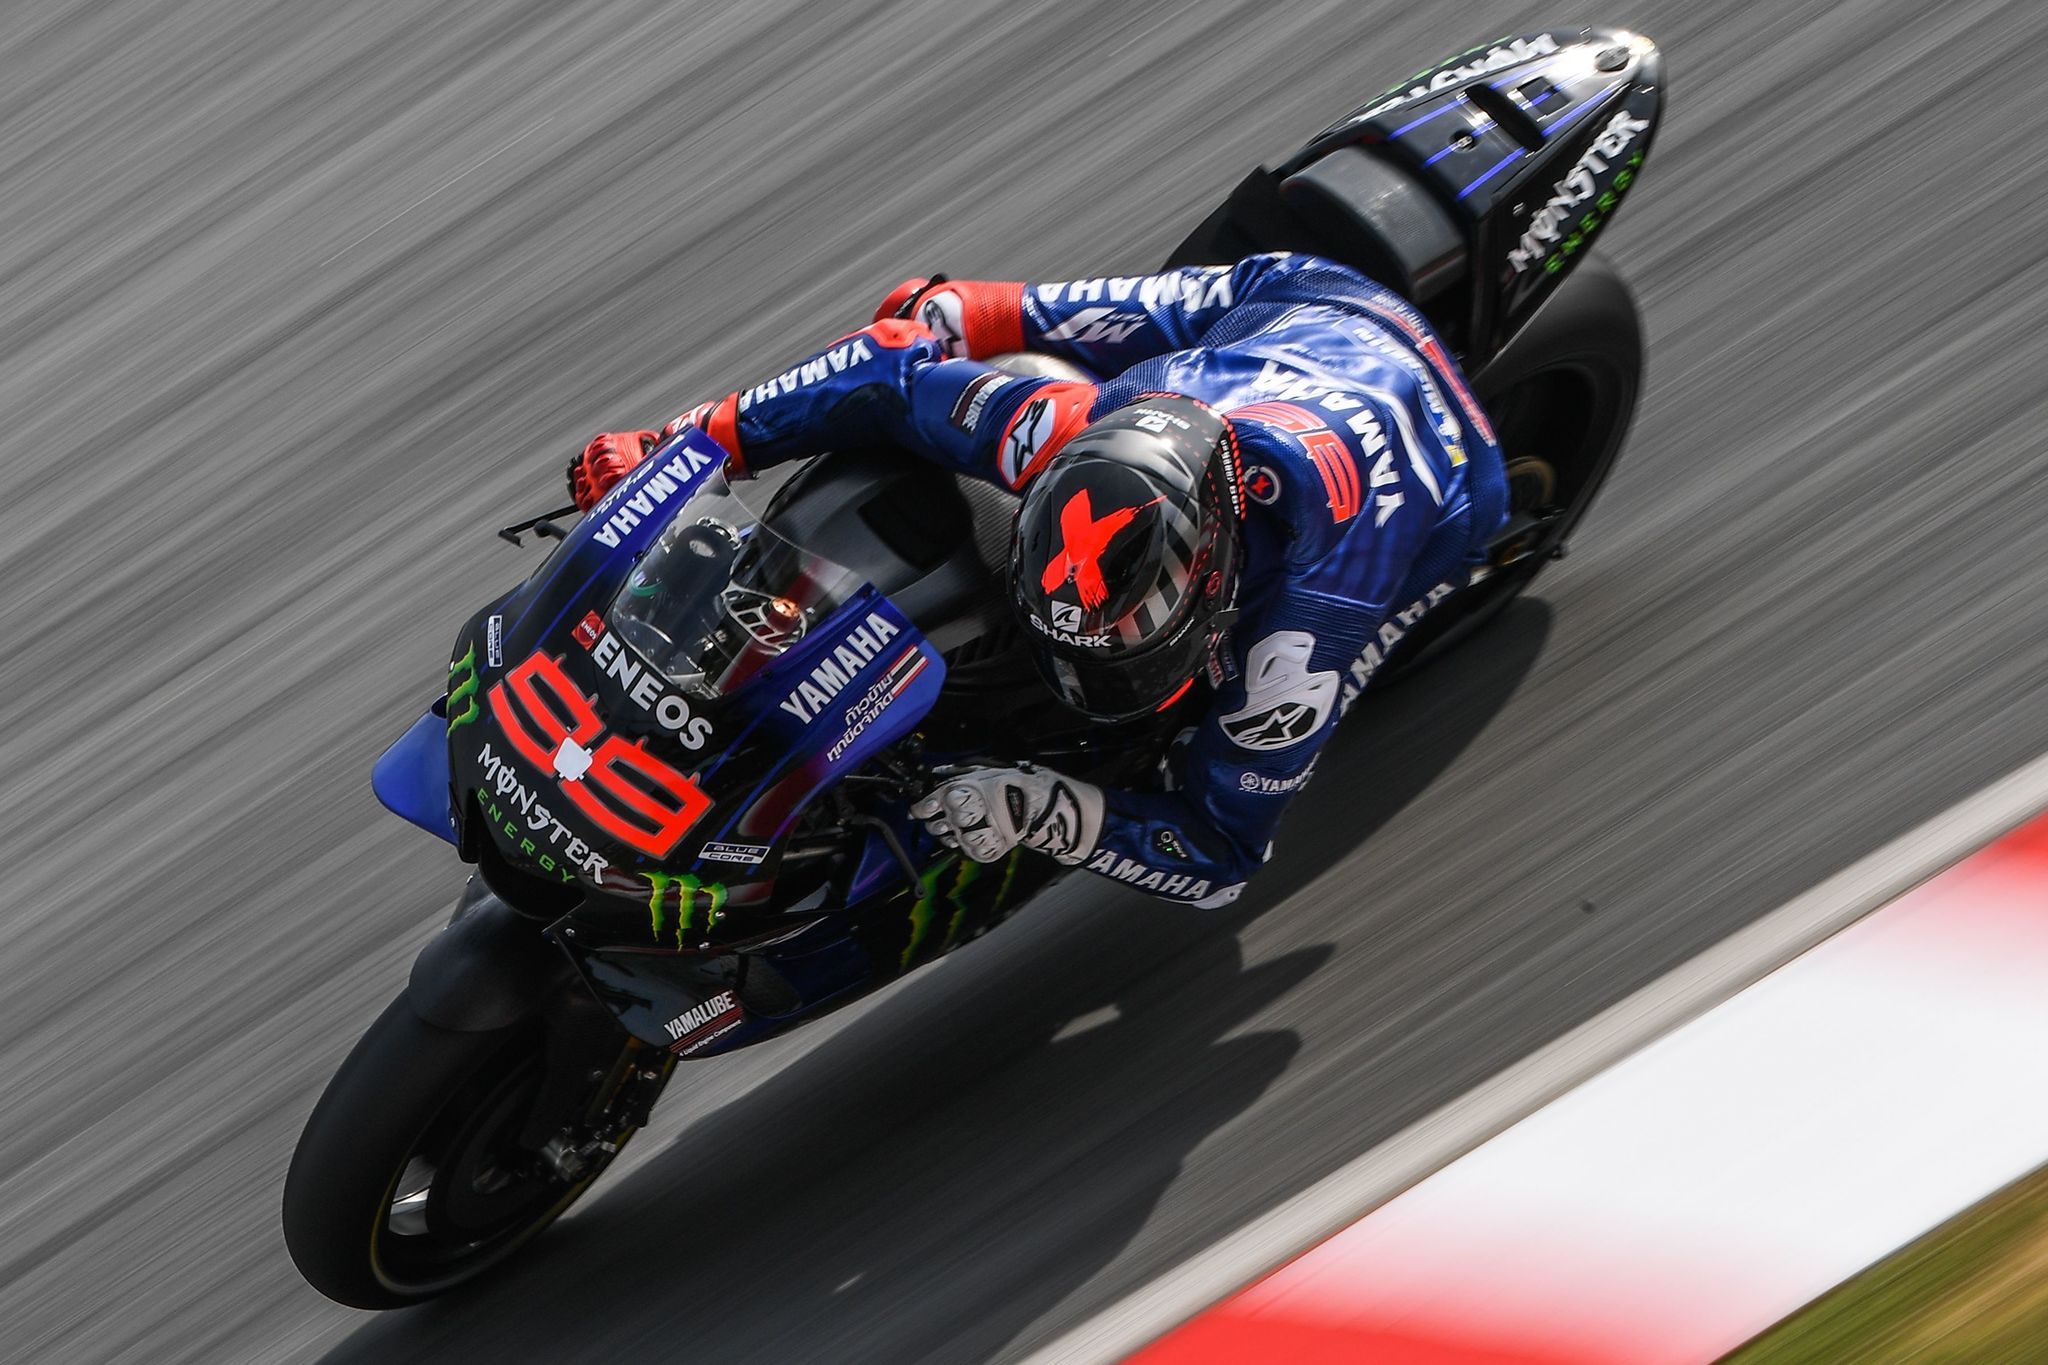 Yamaha Test Teams Spanish rider lt;HIT gt;Jorge lt;/HIT gt; lt;HIT gt;Lorenzo lt;/HIT gt; takes a corner during the last day of the pre-season MotoGP winter test at the Sepang International Circuit in Sepang on February 9, 2020. (Photo by Mohd RASFAN / AFP)